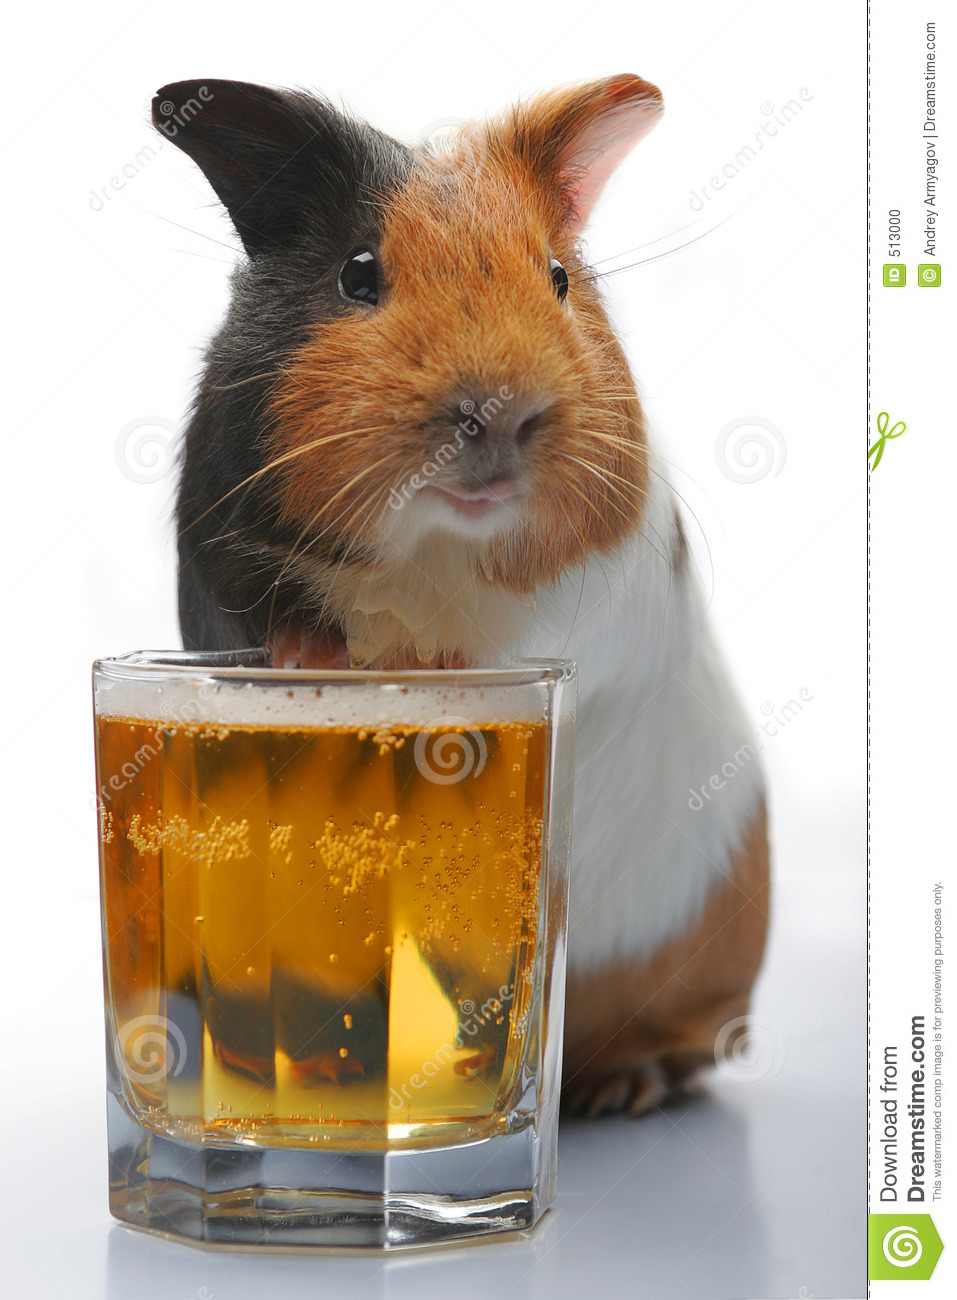 Guinea-pig and beer